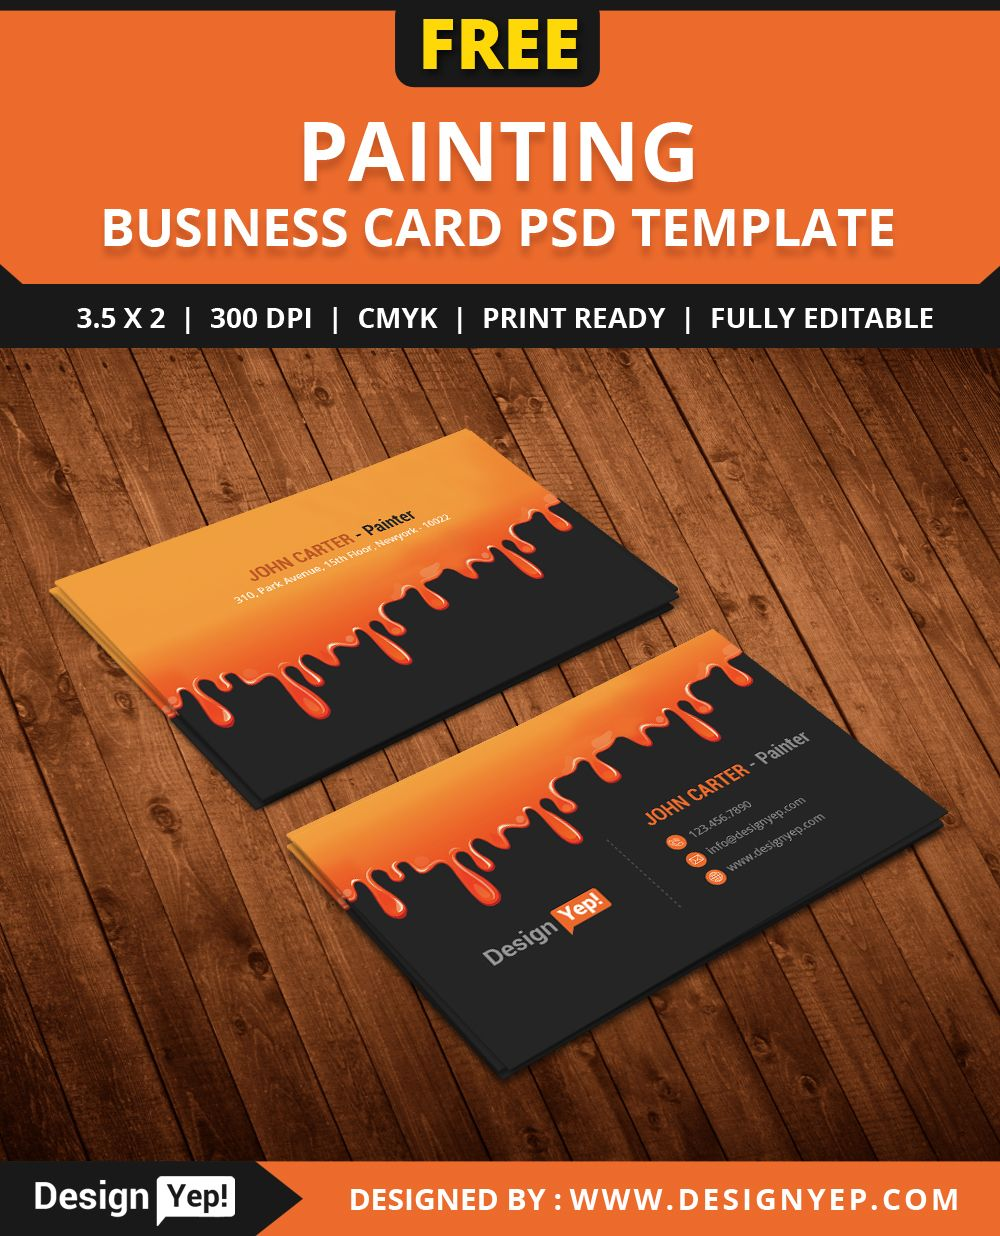 Free-Painting-Business-Card-PSD-Template | Free Business Card ...